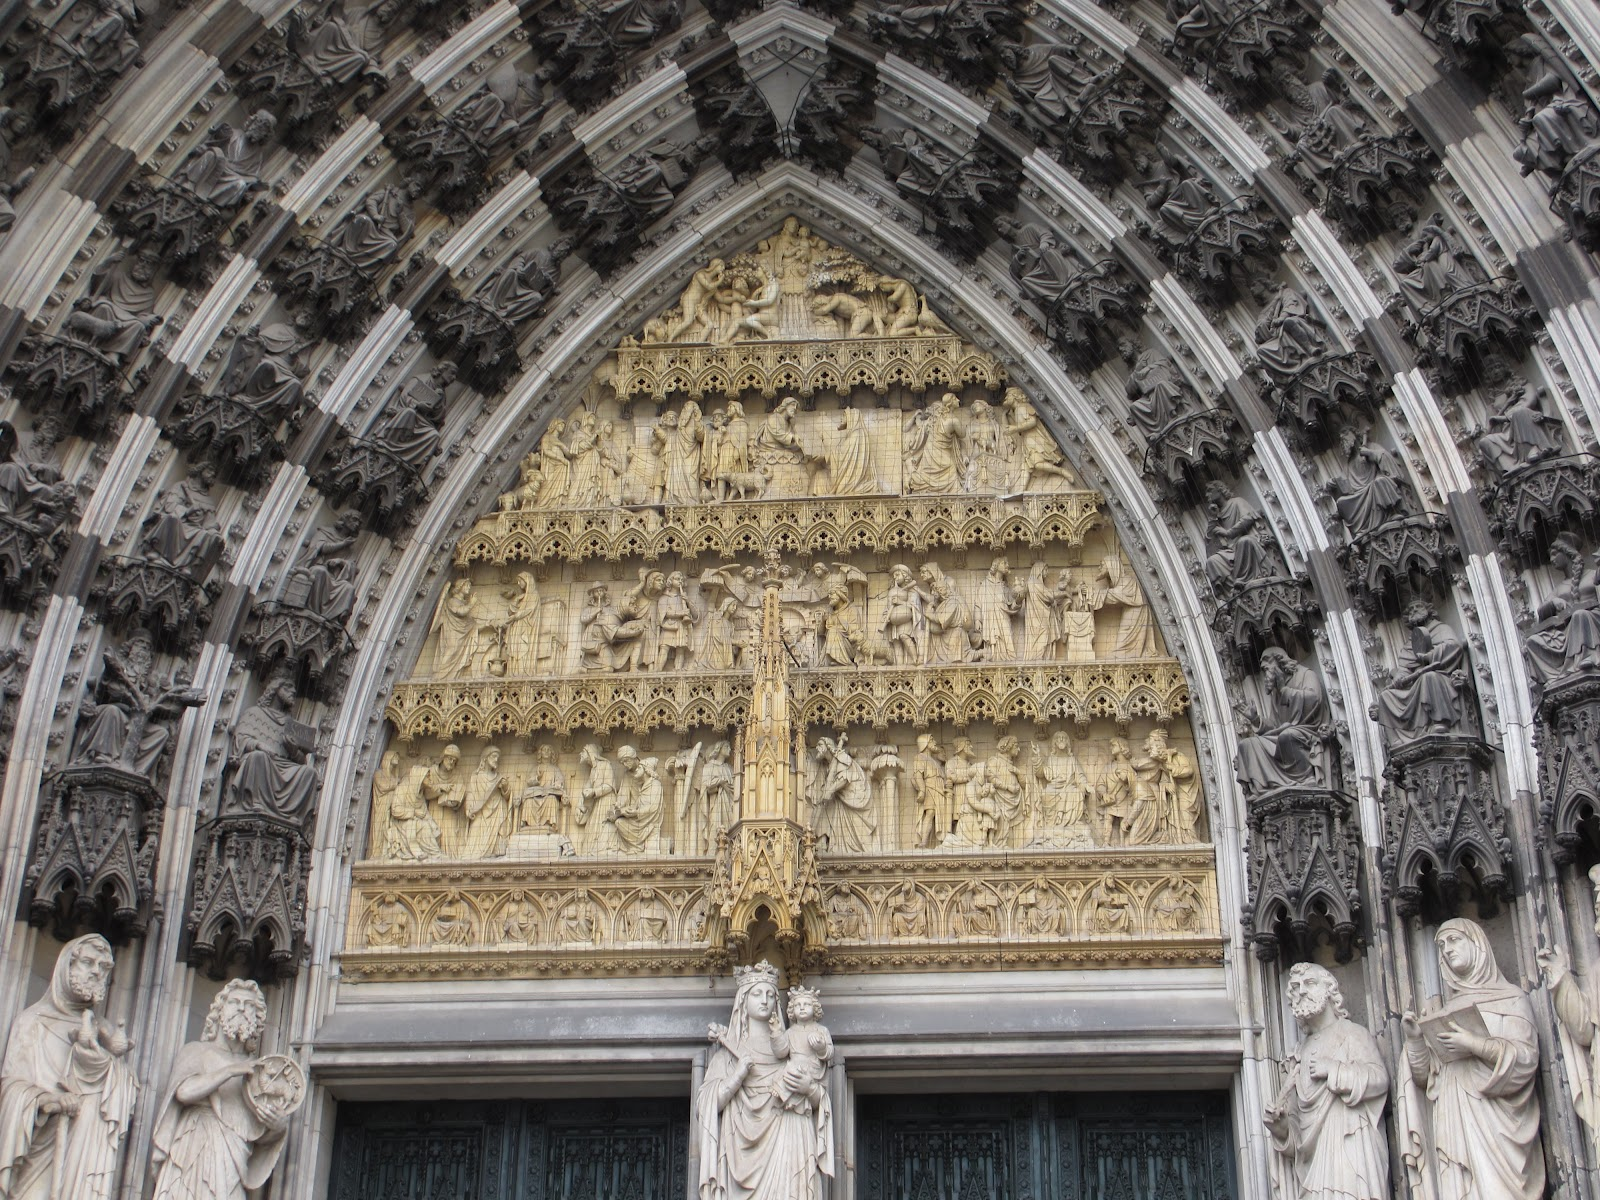 The center portal has two doors with Mary as the main figure just visible below with the tympanum and archivolts above her. & Cannundrums: Cologne Cathedral